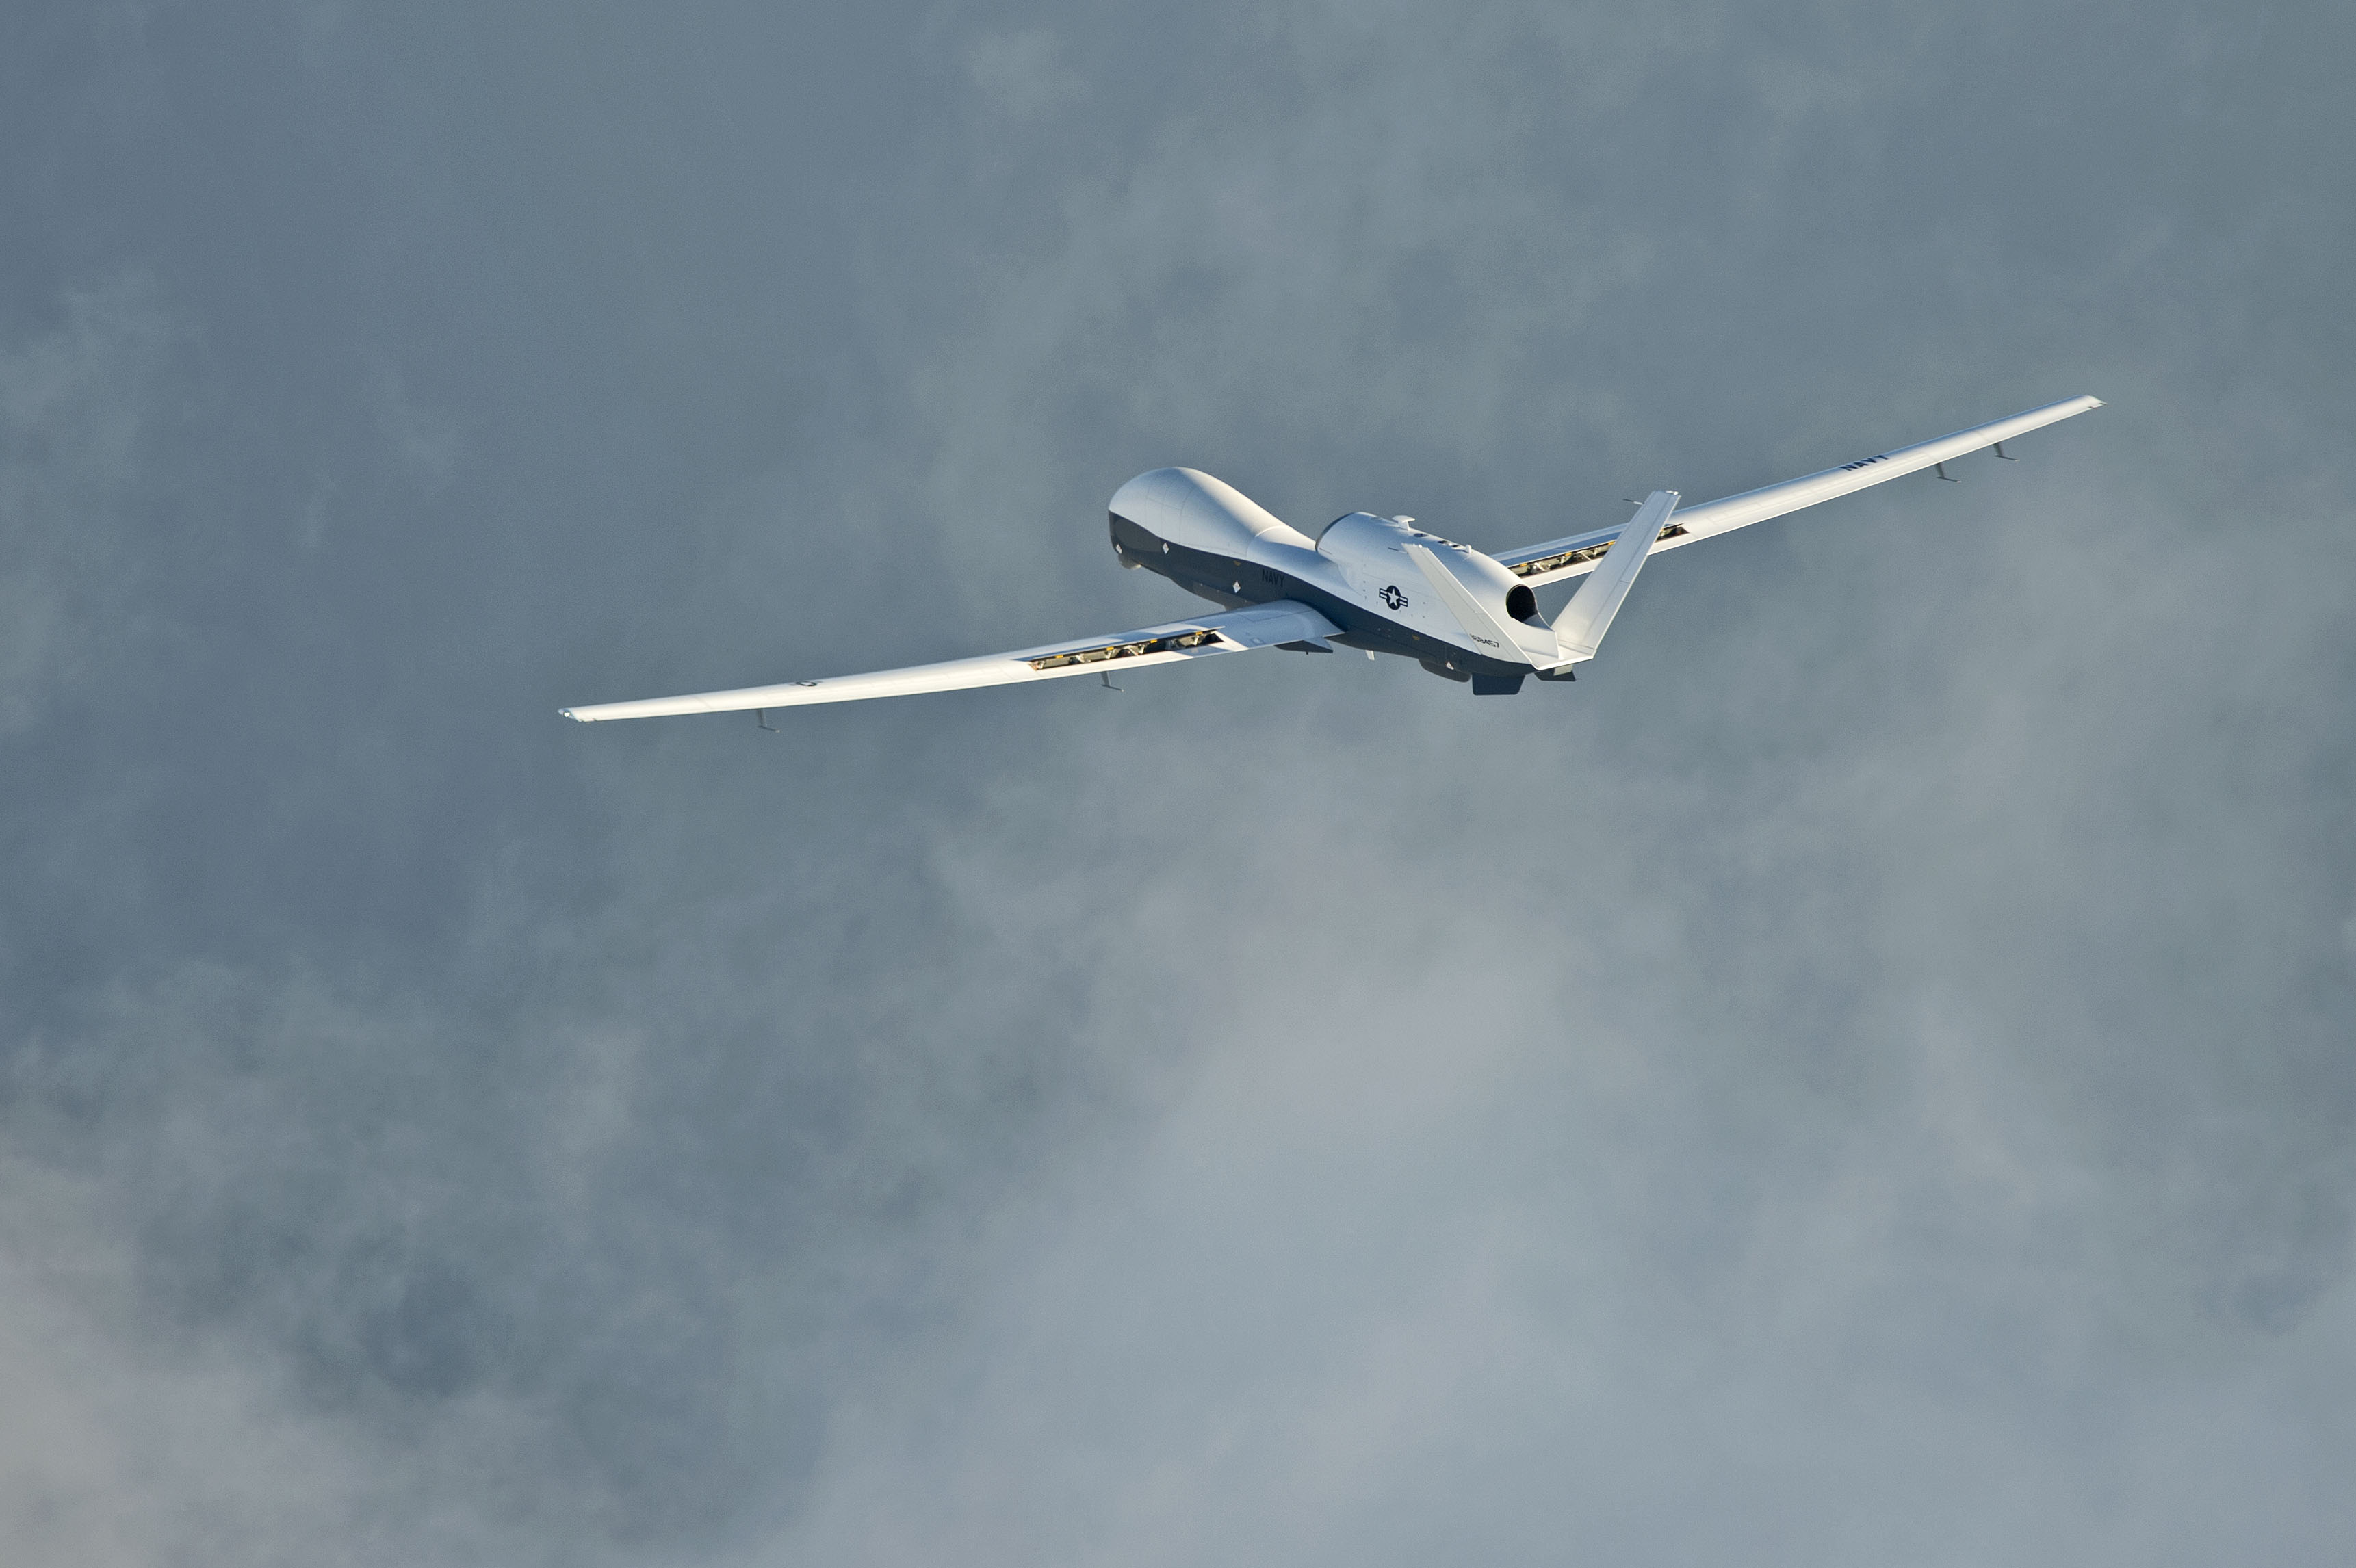 MQ-4C Triton unmanned aircraft system completes its inaugural cross-country ferry flight at Naval Air Station Patuxent River, Md. on Sept. 18, 2014. US Navy Photo